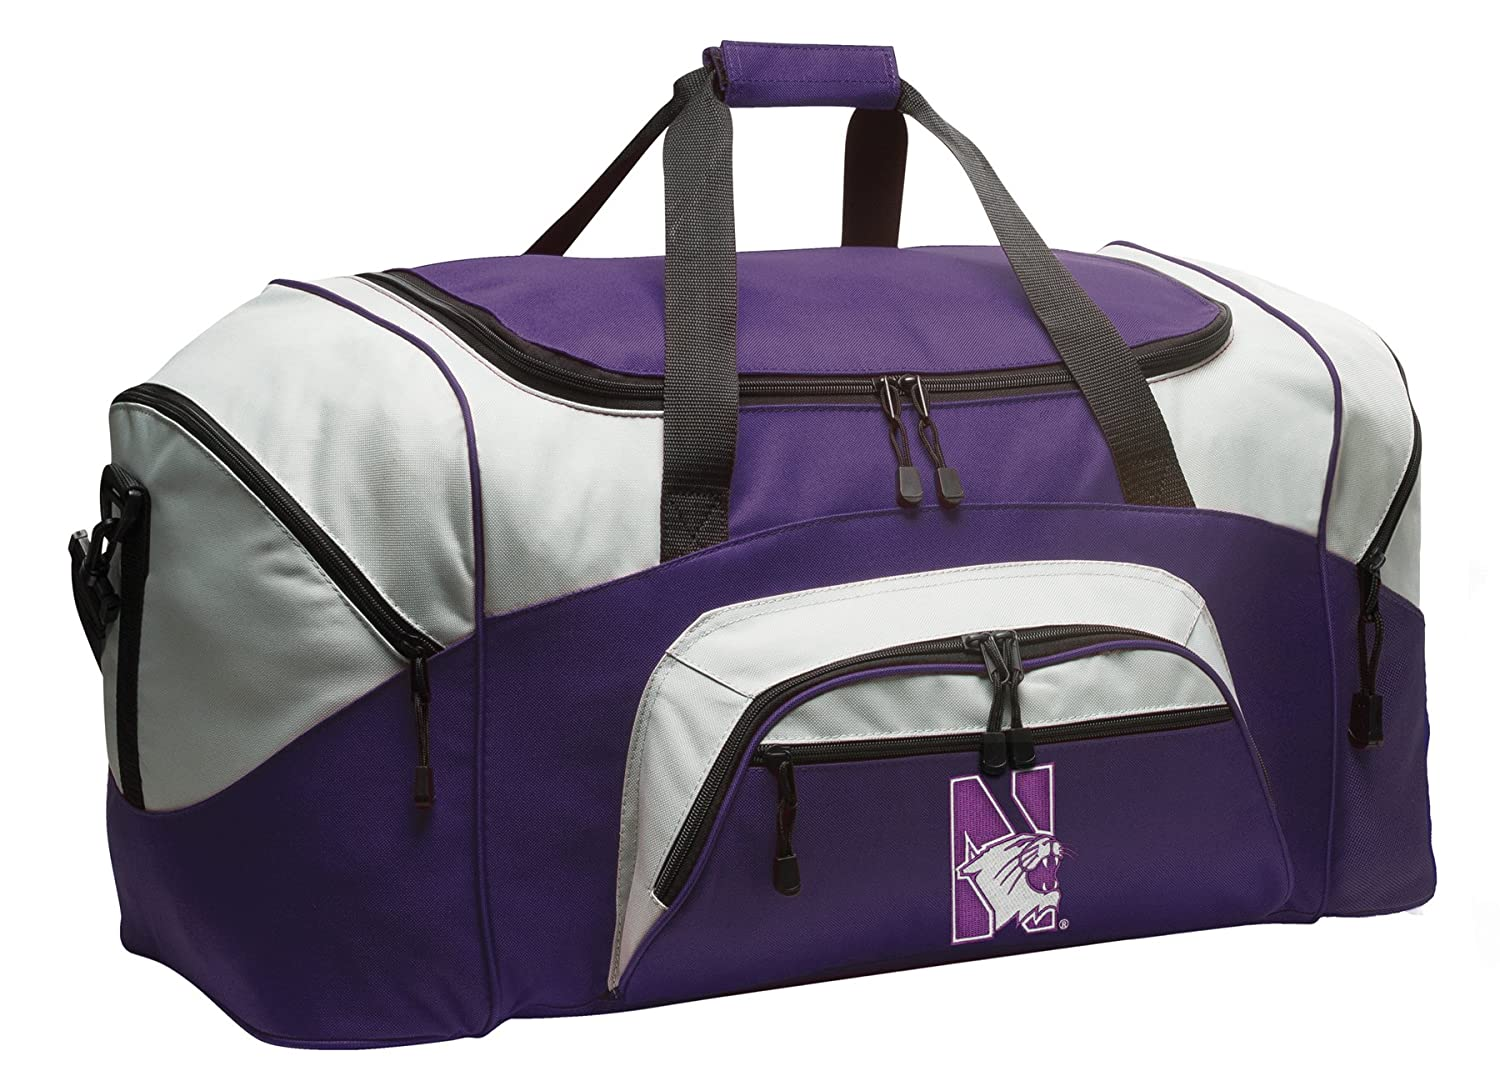 21a621b9 Duffle Bags : Online Shopping for Clothing, Shoes, Jewelry, Pet ...